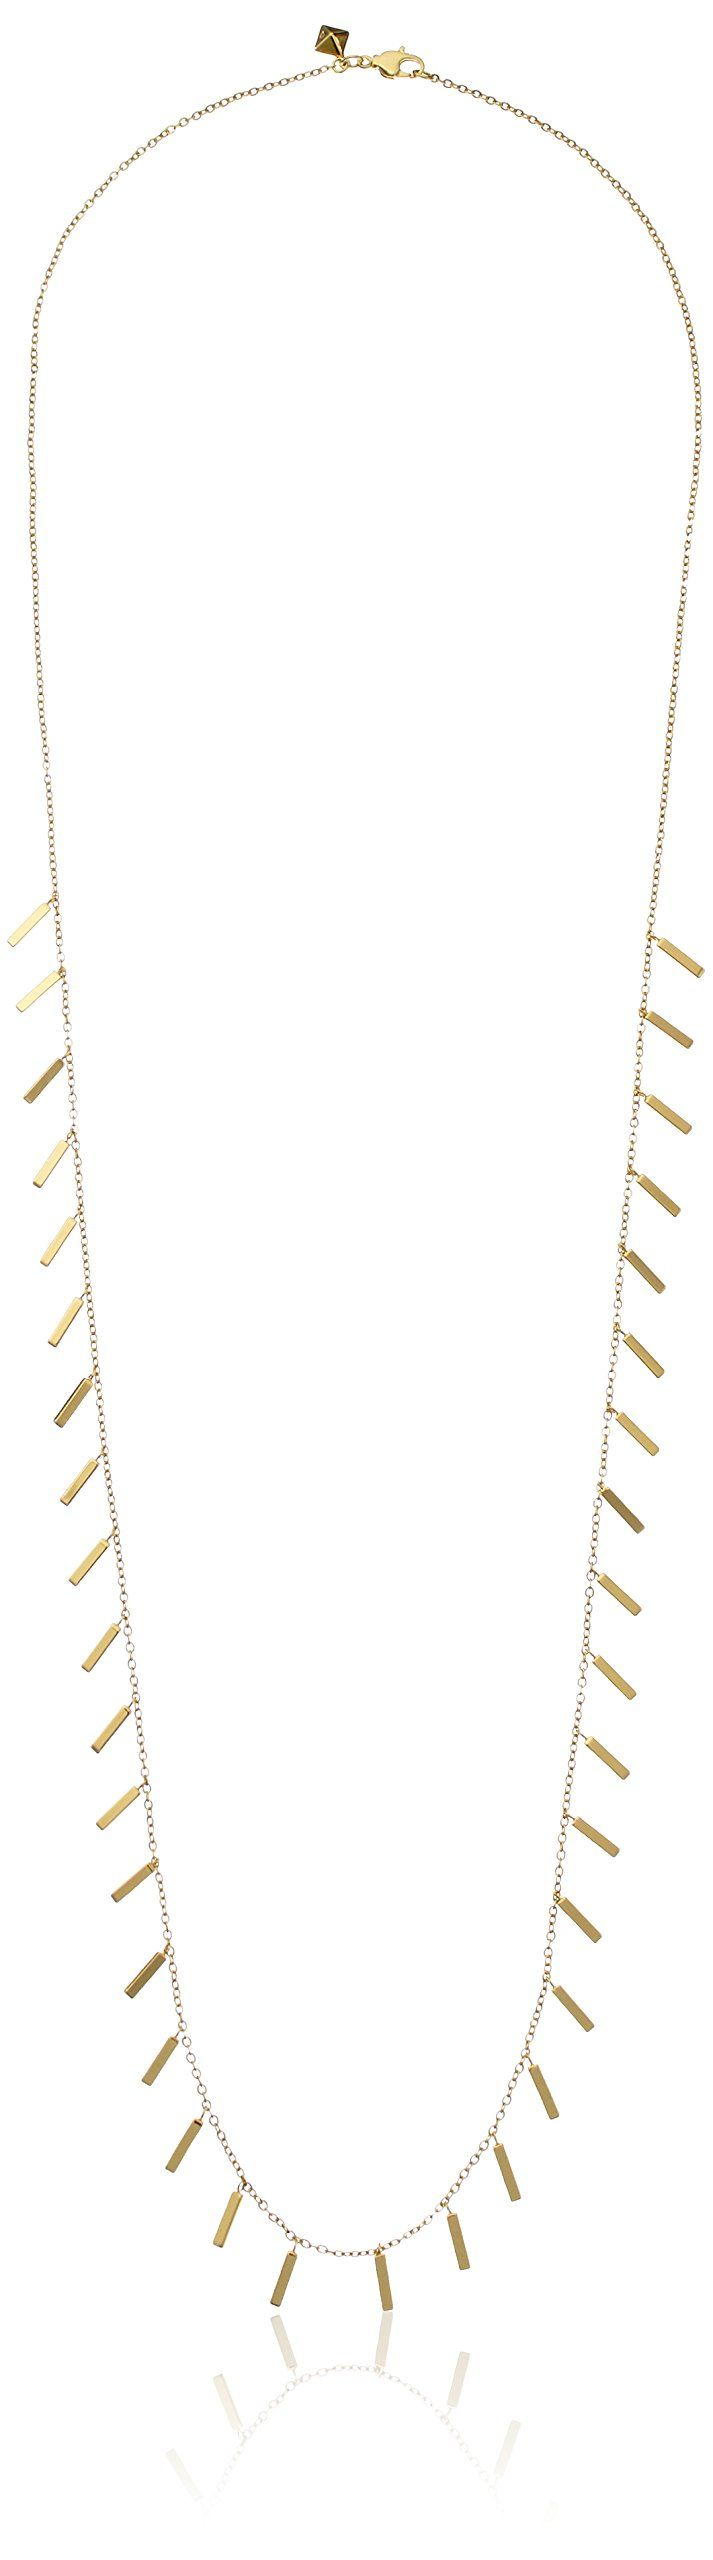 "Rebecca Minkoff ""Bar Essentials"" Gold Long Bar Fringe Strand Necklace, 32"". Plated brass necklace with fringe bar tassels at center and sides. 32"" cable chain with lobster-claw clasp. Imported."